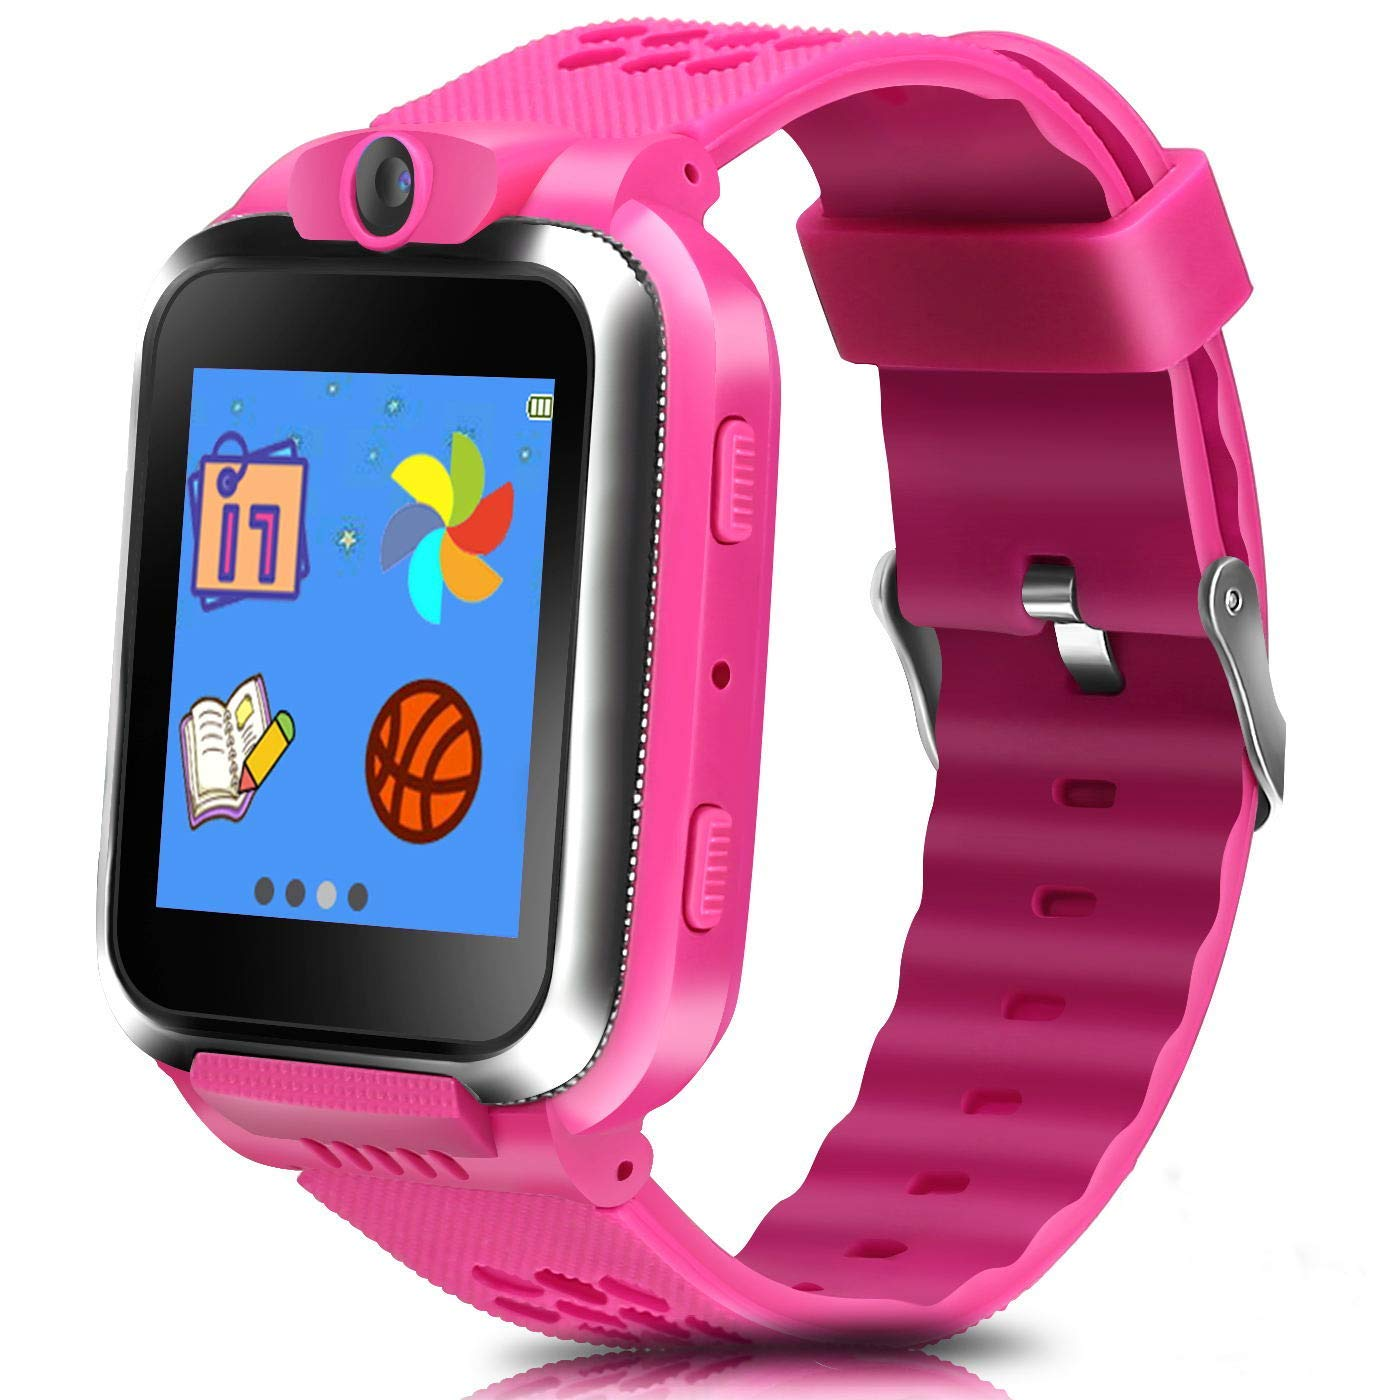 ZOPPRI Kids Game smartwatch Touch Screen Kinds of Games Kids Watch Theme Calendar Stopwatch Alarm Clock Photo Timer Multi-Function Watch Toy Gift for 3-12 Years Old boy Girl Birthday Gift (Pink)